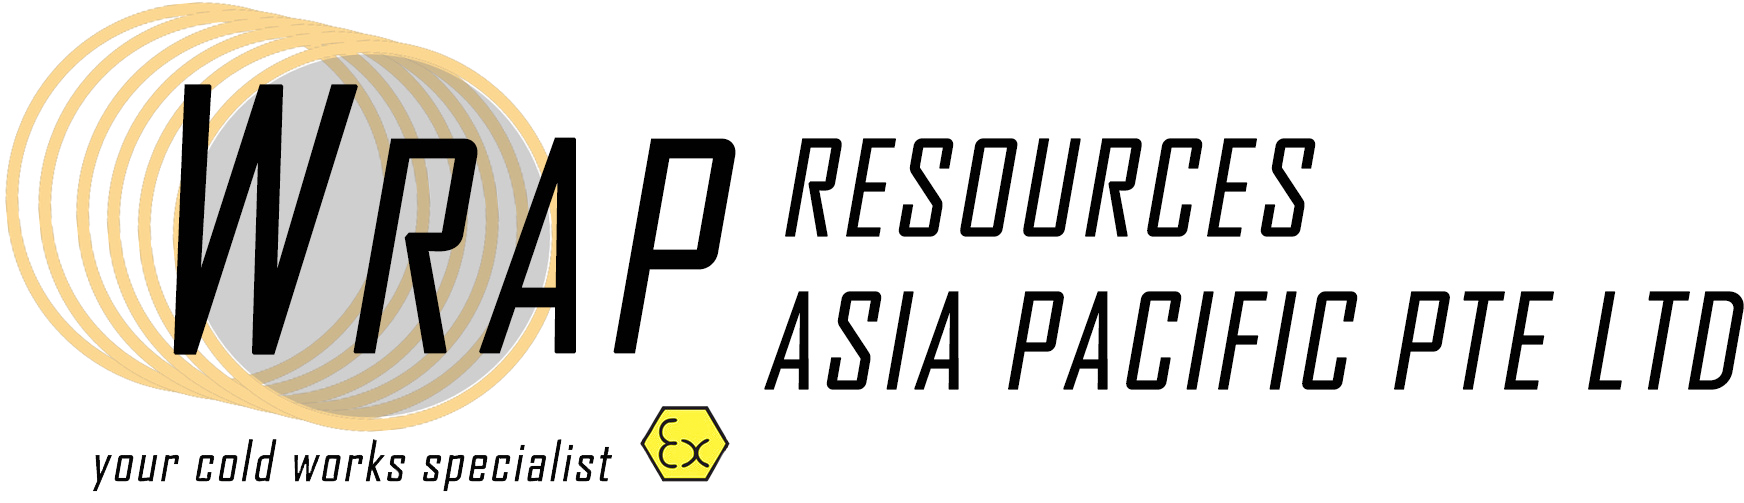 WRAP Resources Asia Pacific Pte Ltd